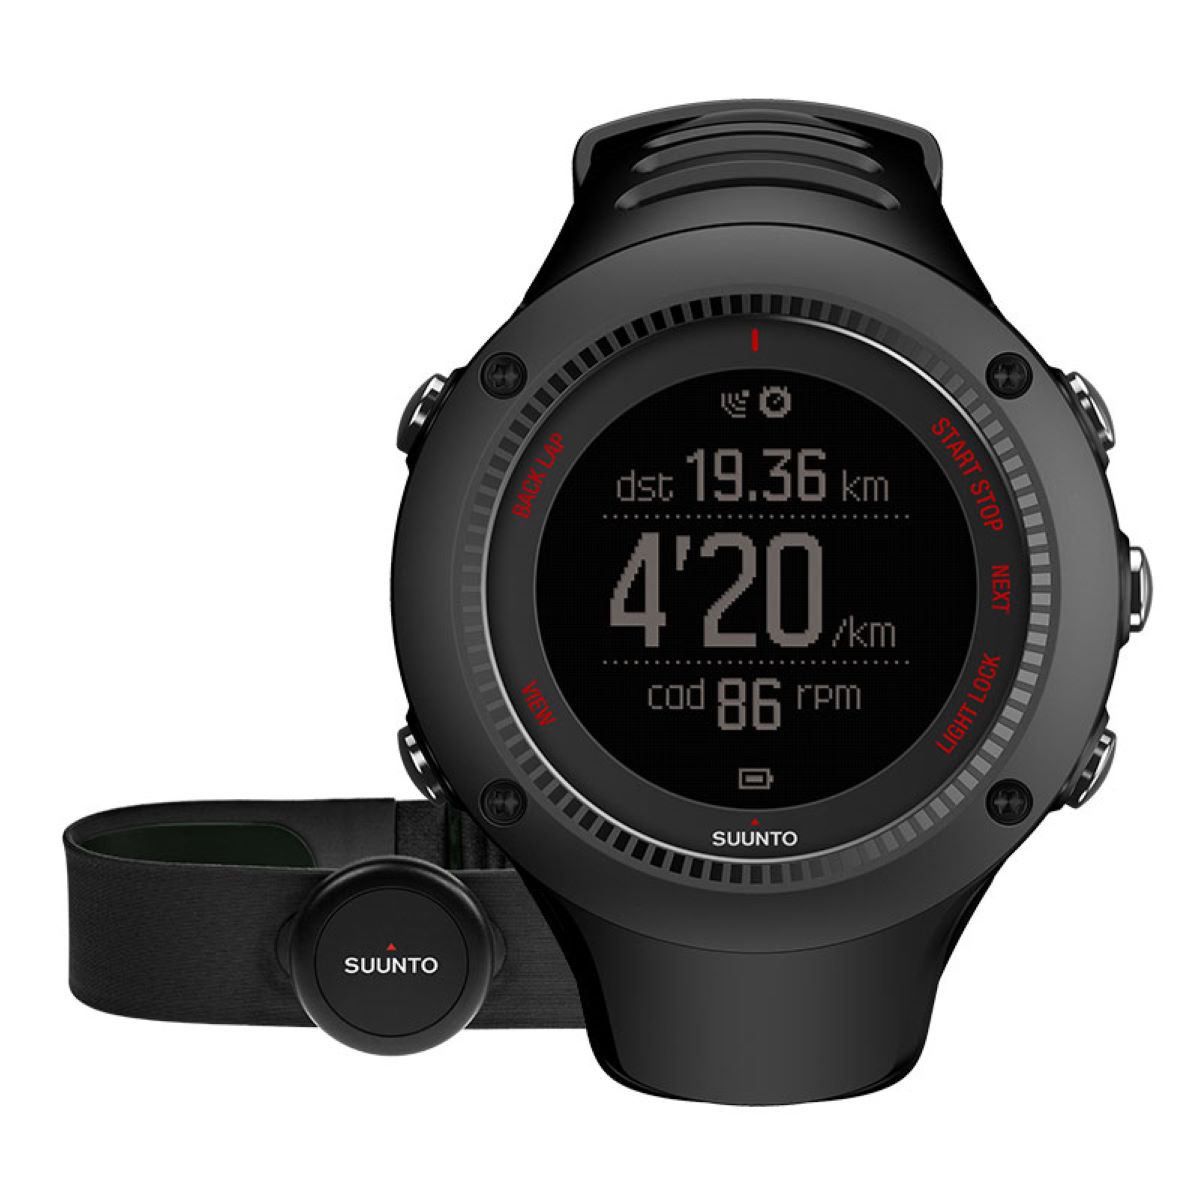 Suunto Ambit 3 Run HR (con pulsómetro) (color negro)